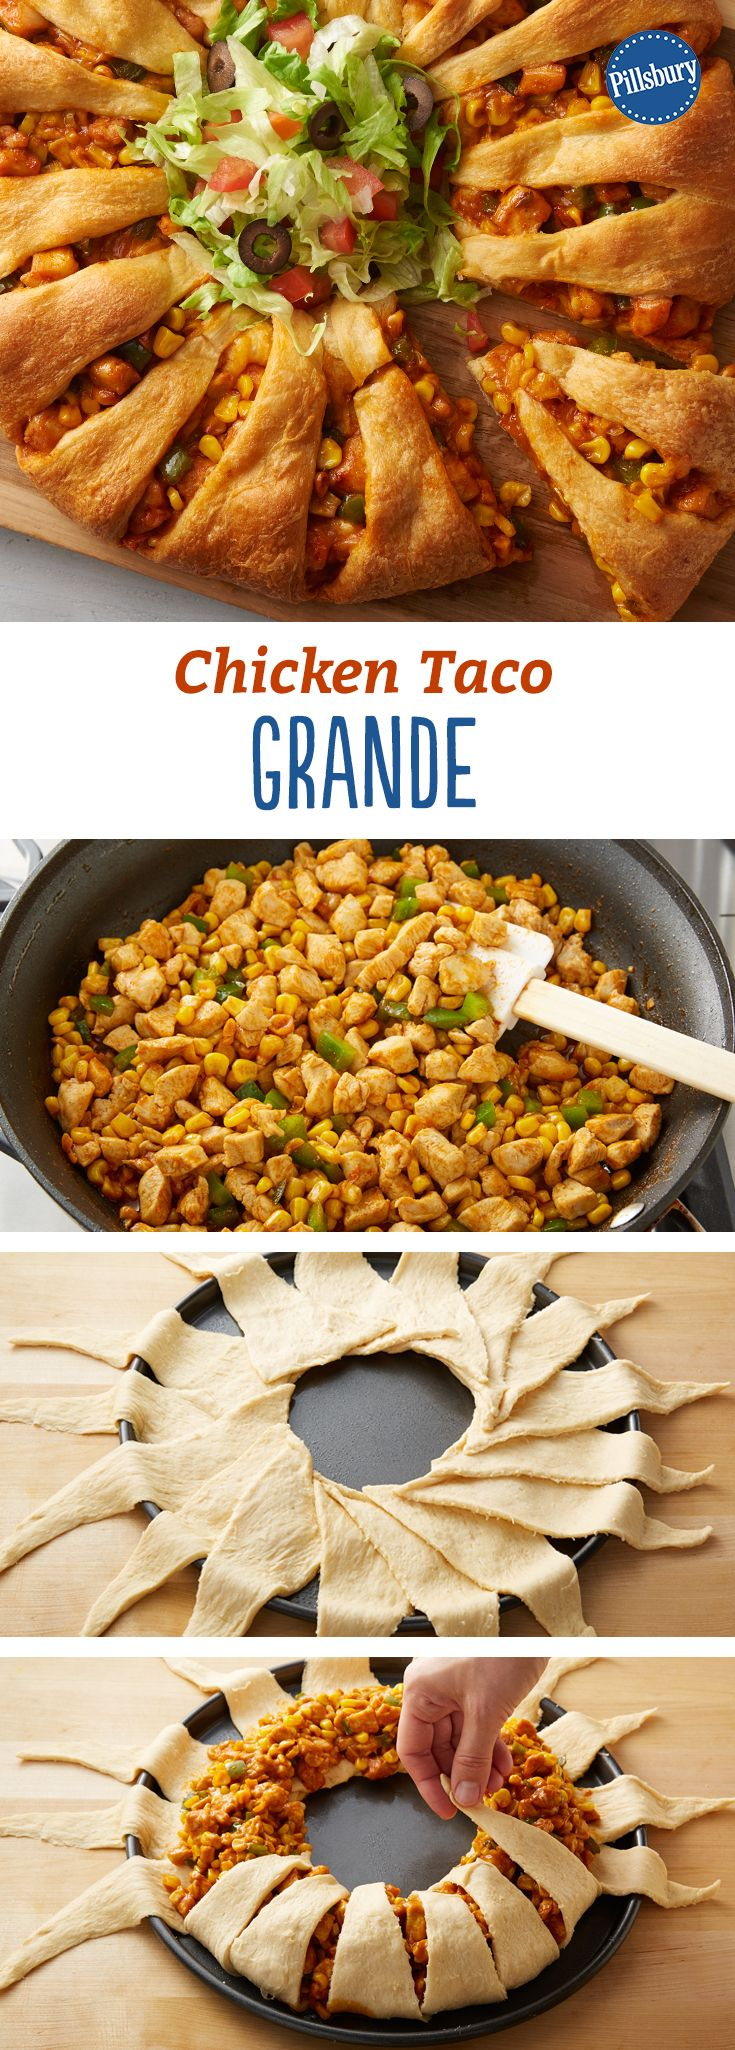 Need an impressive game day app or a crescent dinner the whole family will love? Try this Chicken Taco Grande!